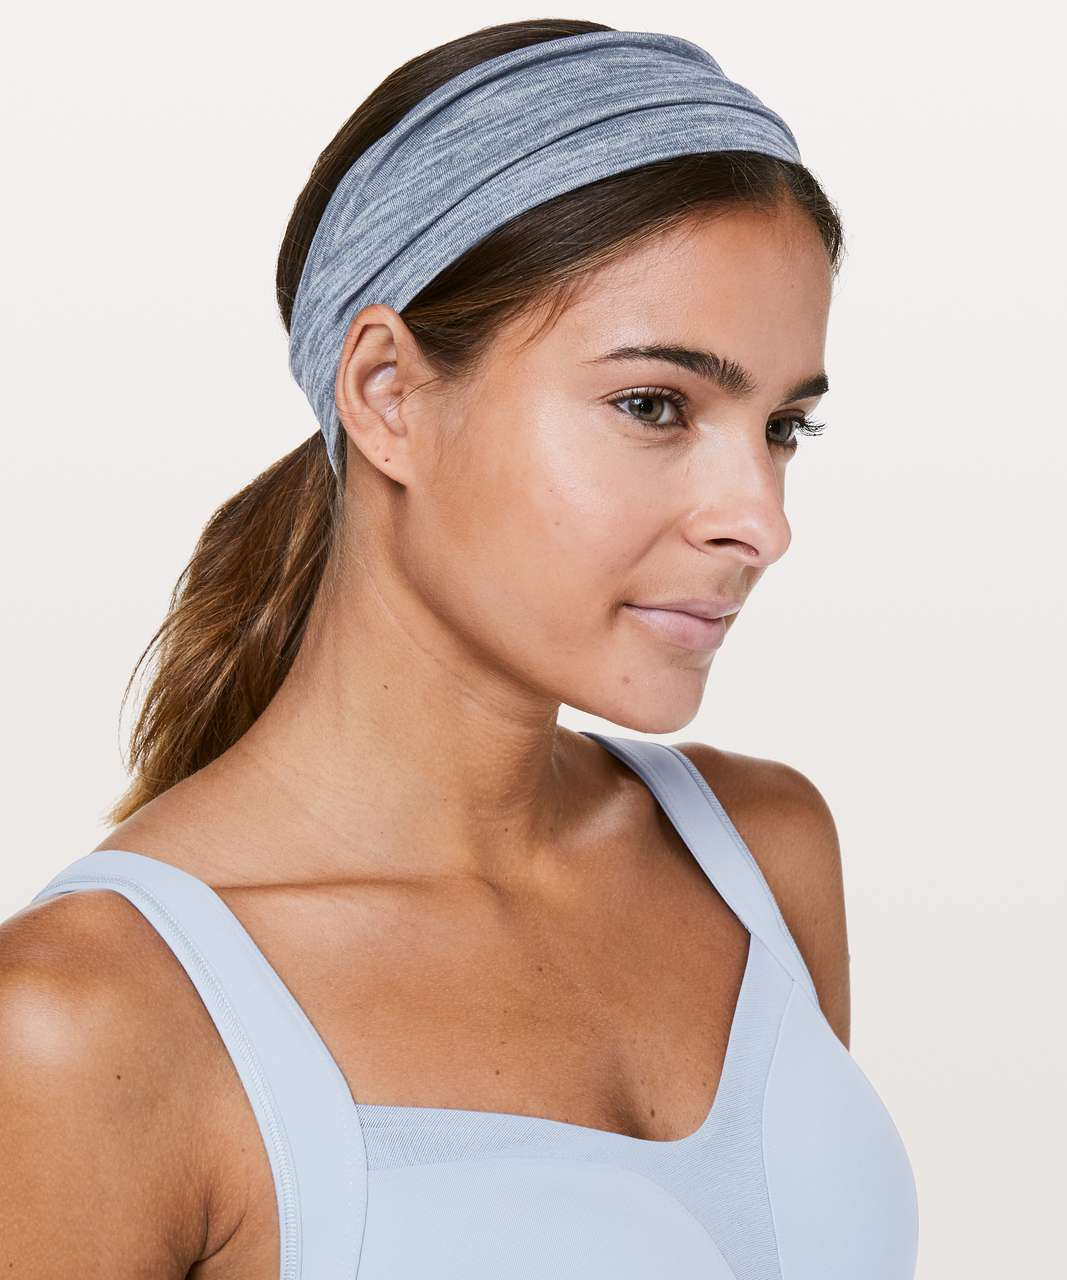 Lululemon Fringe Fighter Headband - Heathered Thunder Blue / Heathered Thunder Blue